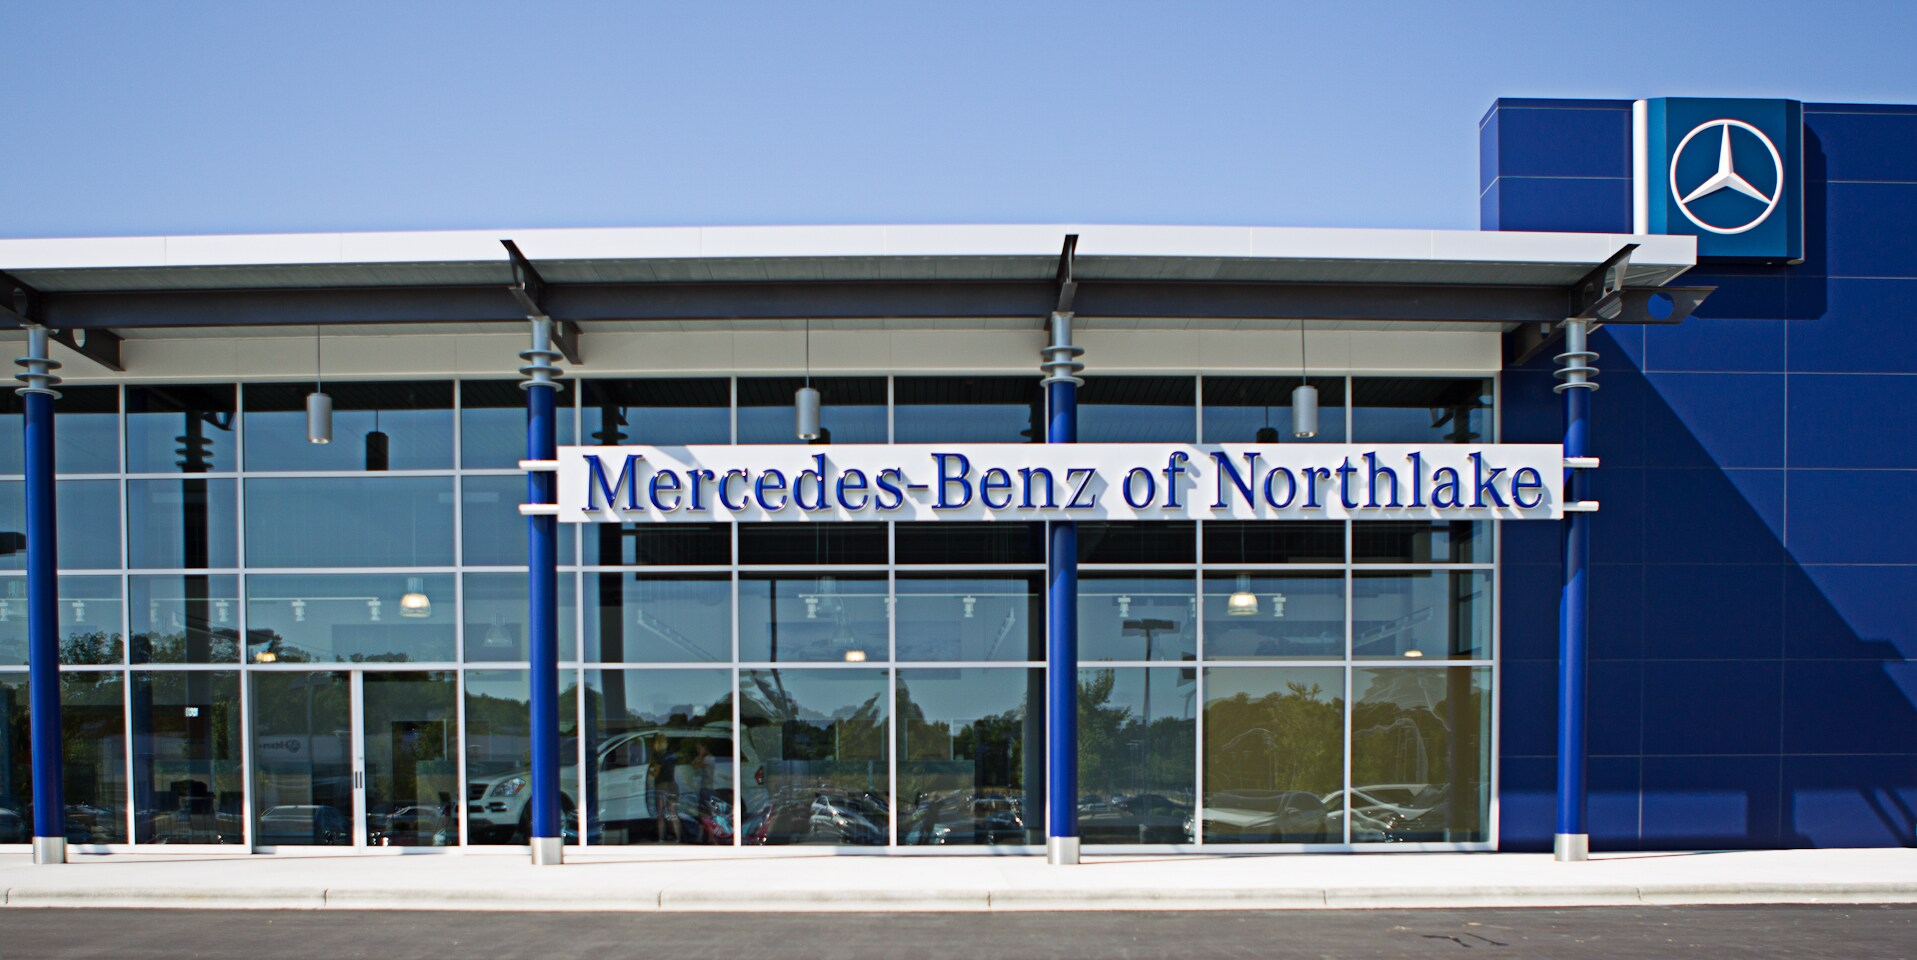 about mercedes benz of northlake new mercedes benz used car dealer in charlotte. Black Bedroom Furniture Sets. Home Design Ideas